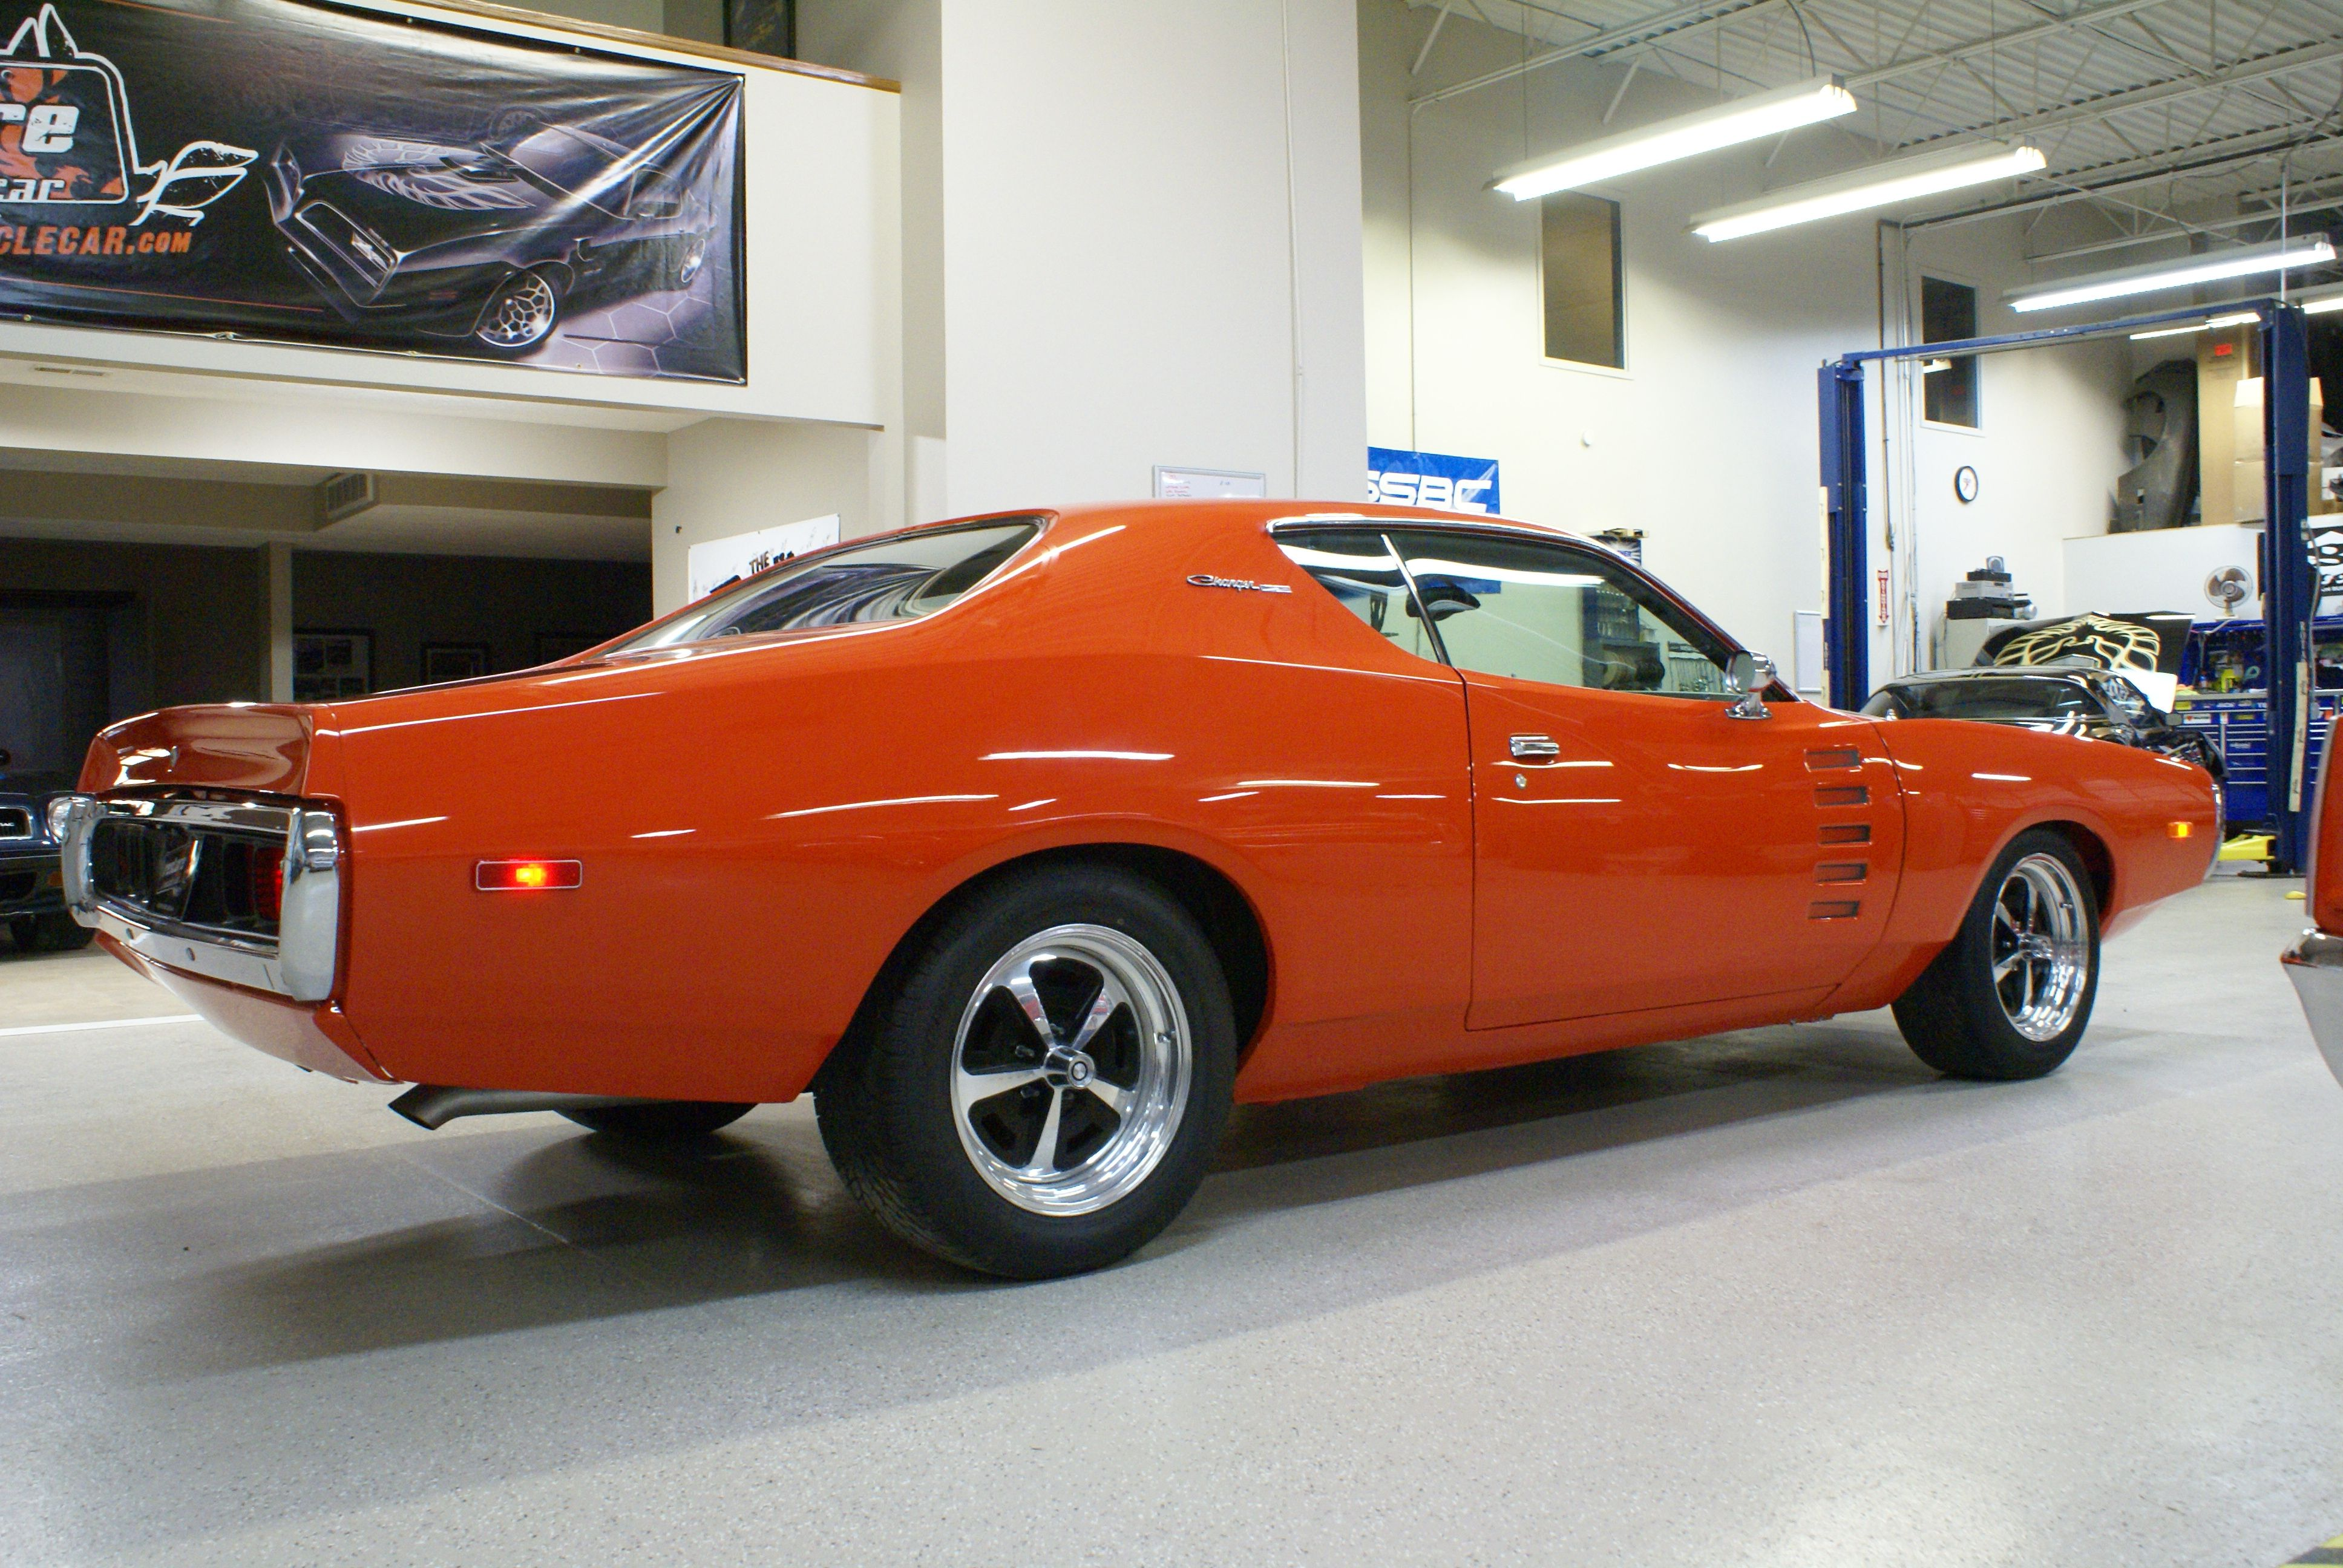 1972 Charger- All photos at: http://www.flickr.com/photos/restoreamusclecar/sets/72157619790150666/